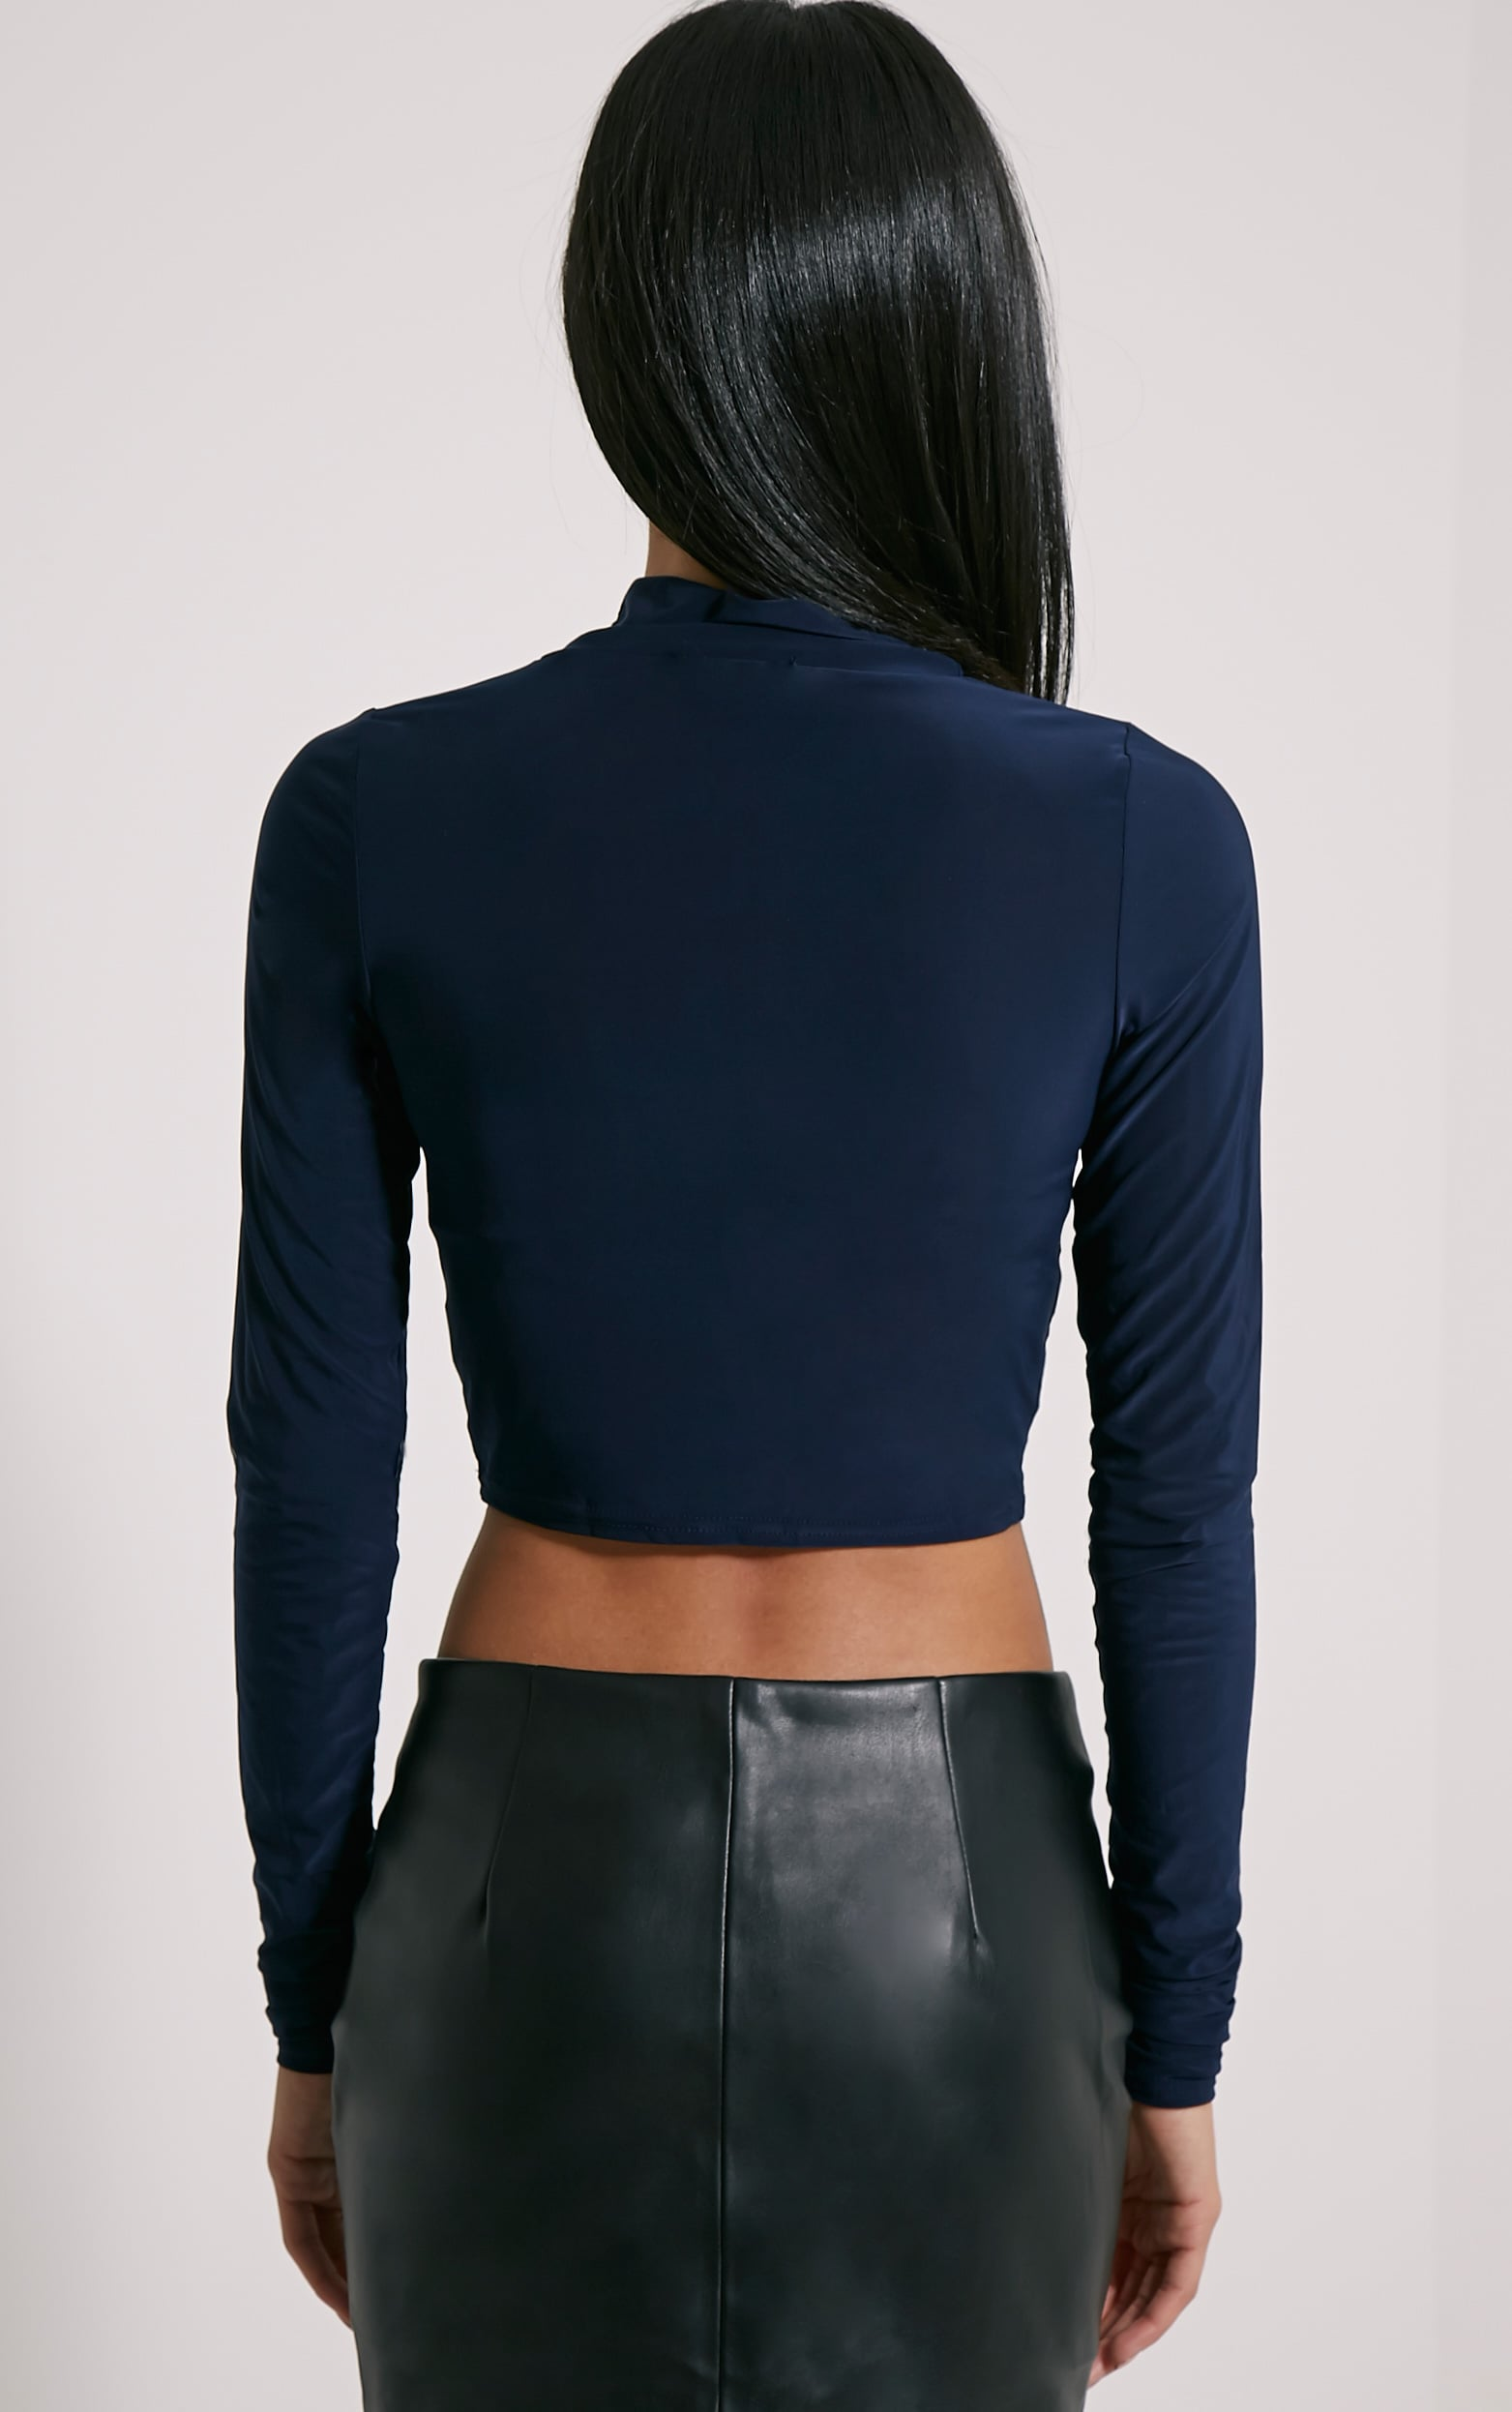 Saylor Navy Slinky Turtle Neck Crop Top 2